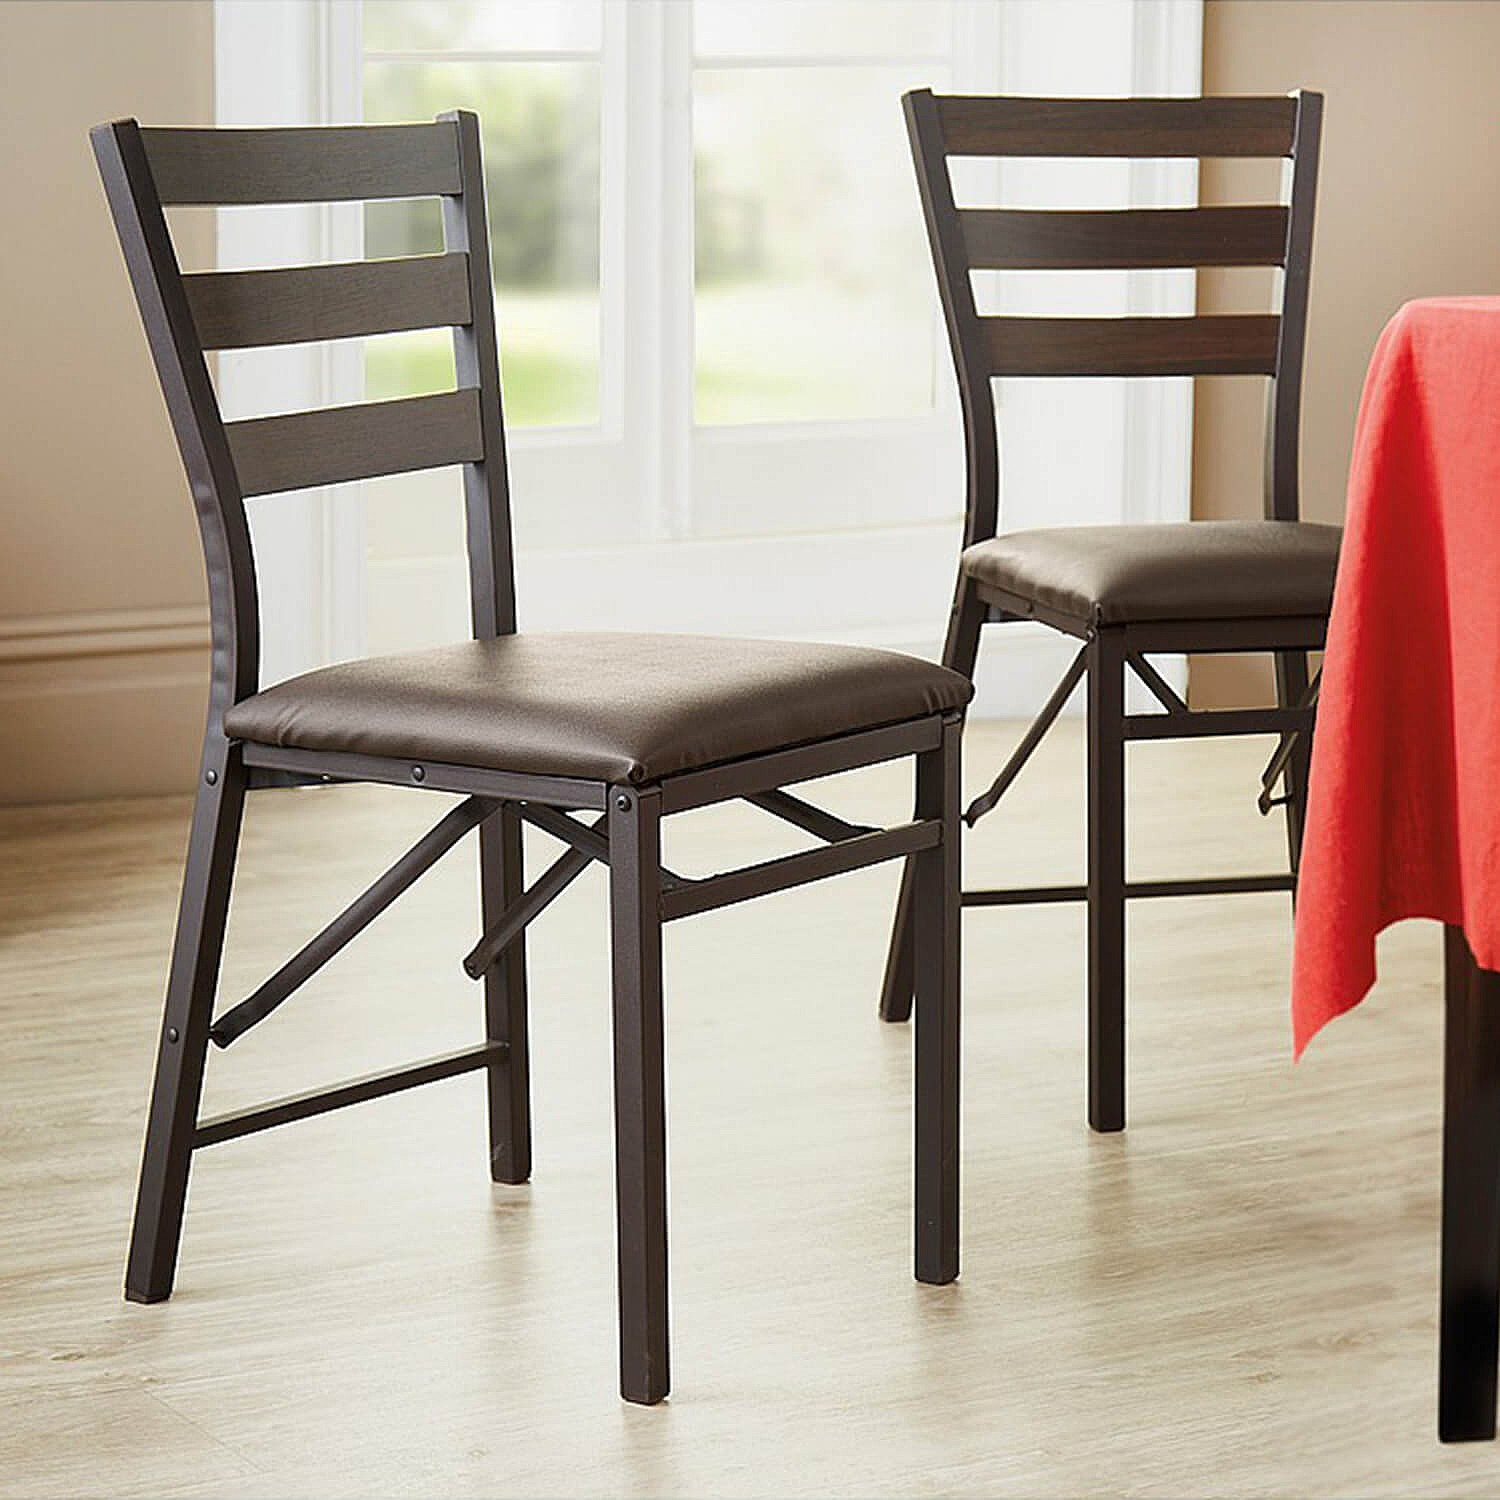 Dining Chair Set Of 2 Folding Dining Chairs Set Of 2